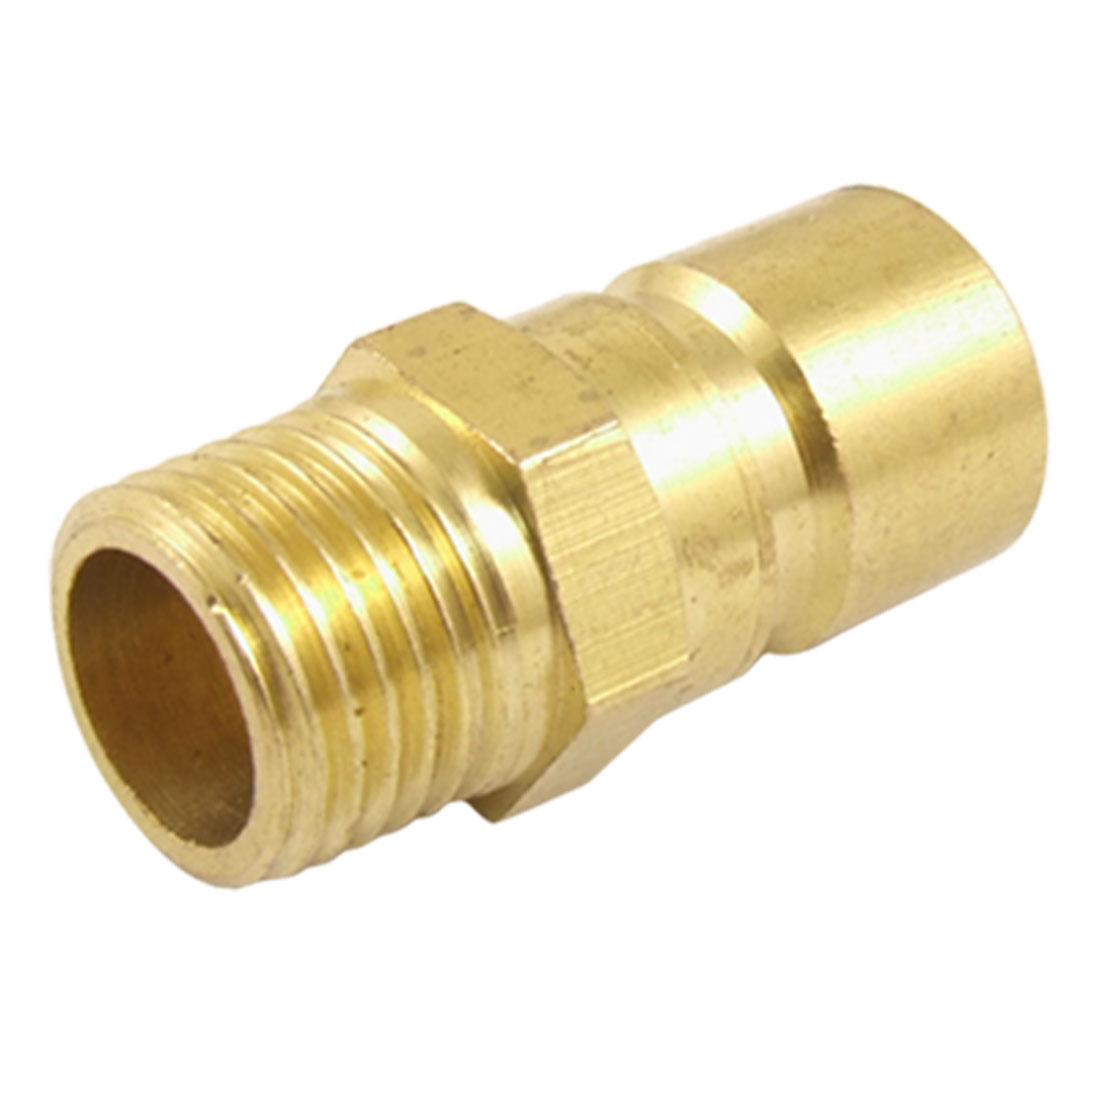 "Brass Pipe Fitting Quick Disconnect Coupler Male Plug Mold Coupling 33/64"" Fine Thread"